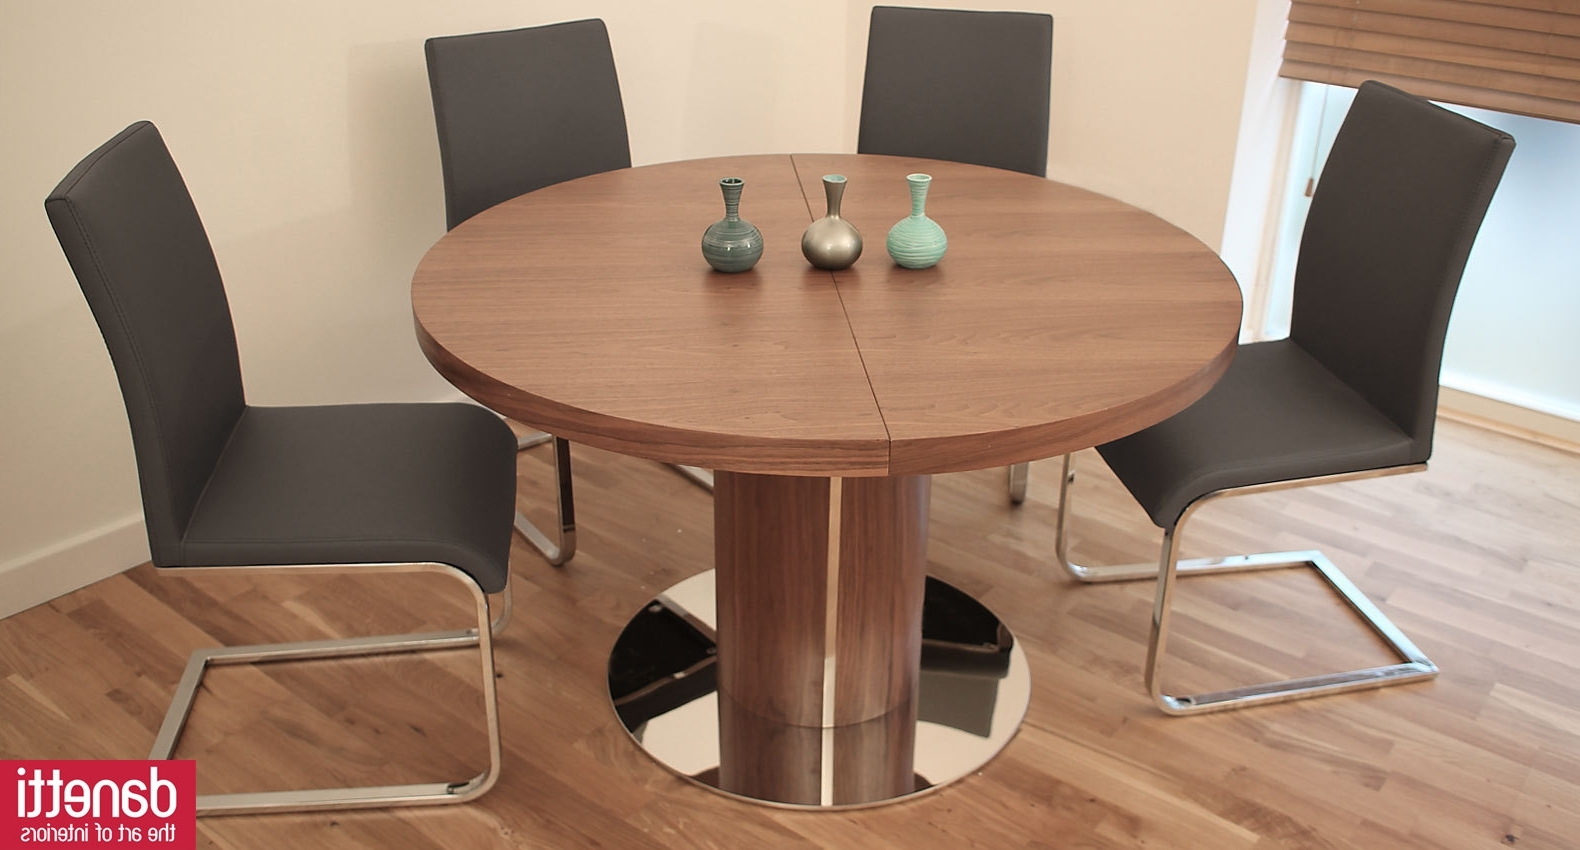 Oak And Glass Dining Tables And Chairs Inside Latest And Oak Gumtree Chairs Round Oval Black Spaces Glass Gray John Lewis (View 15 of 25)